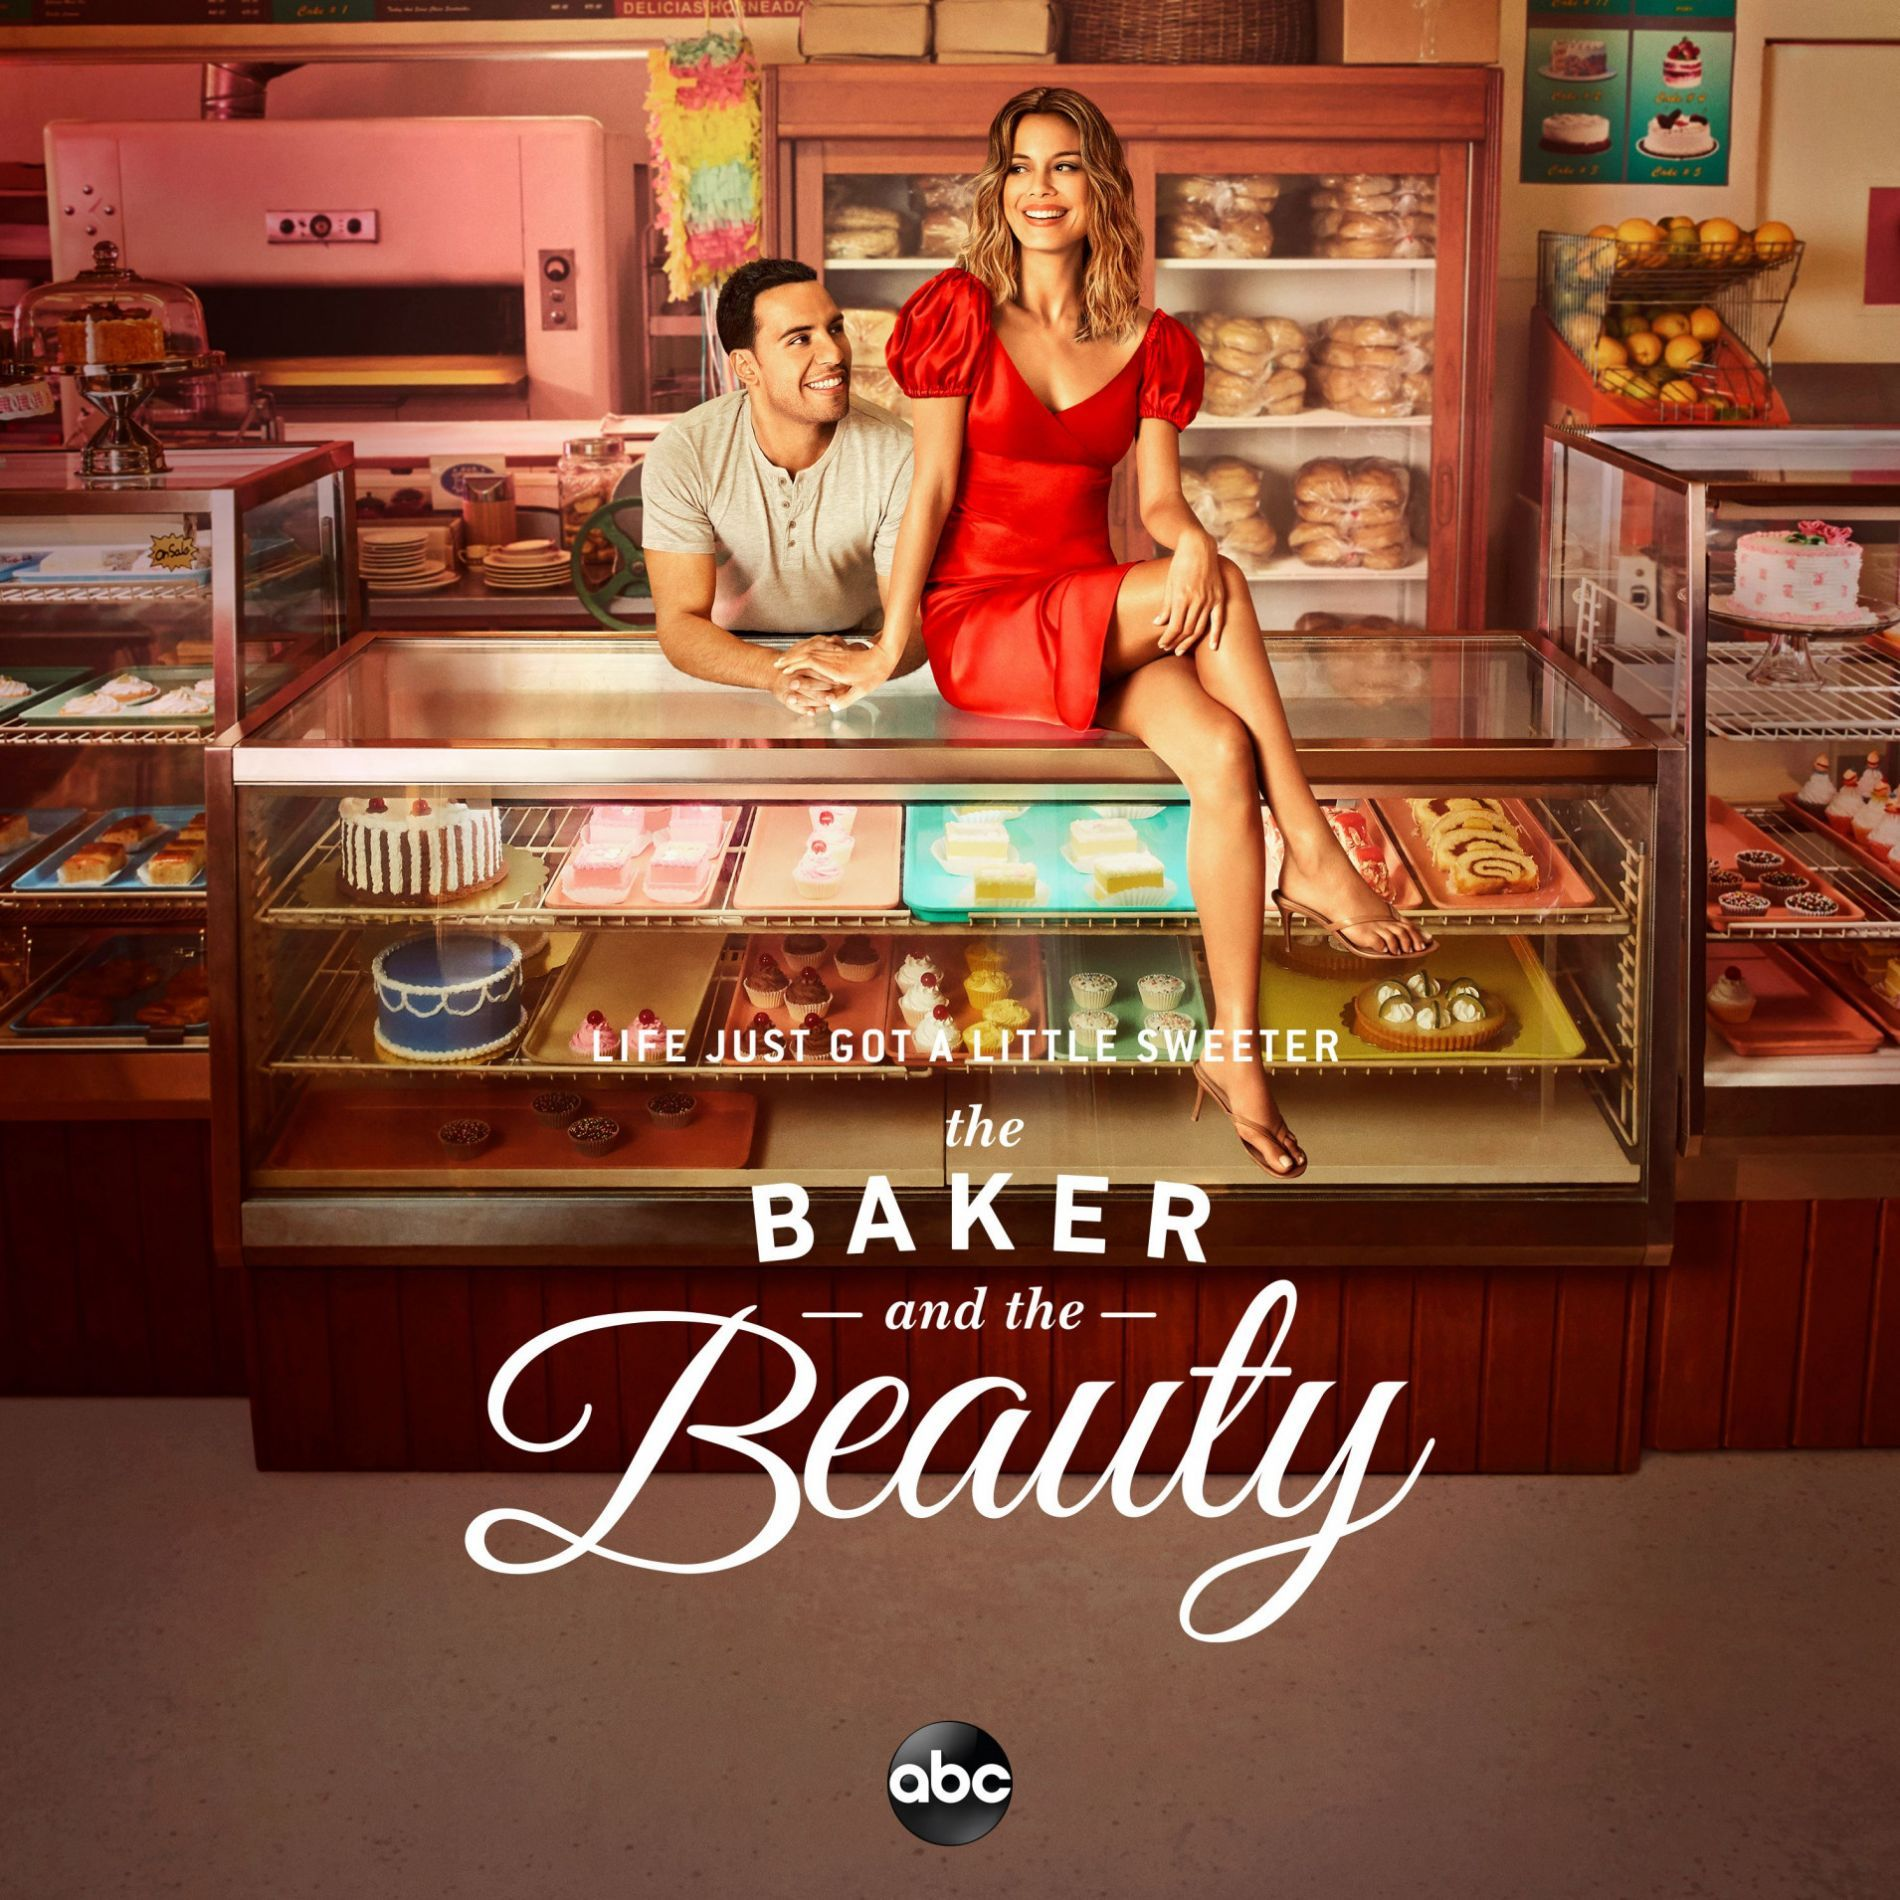 Mariana Bo - Ole Ole in ABC TV series promo 'The Baker  & The Beauty'